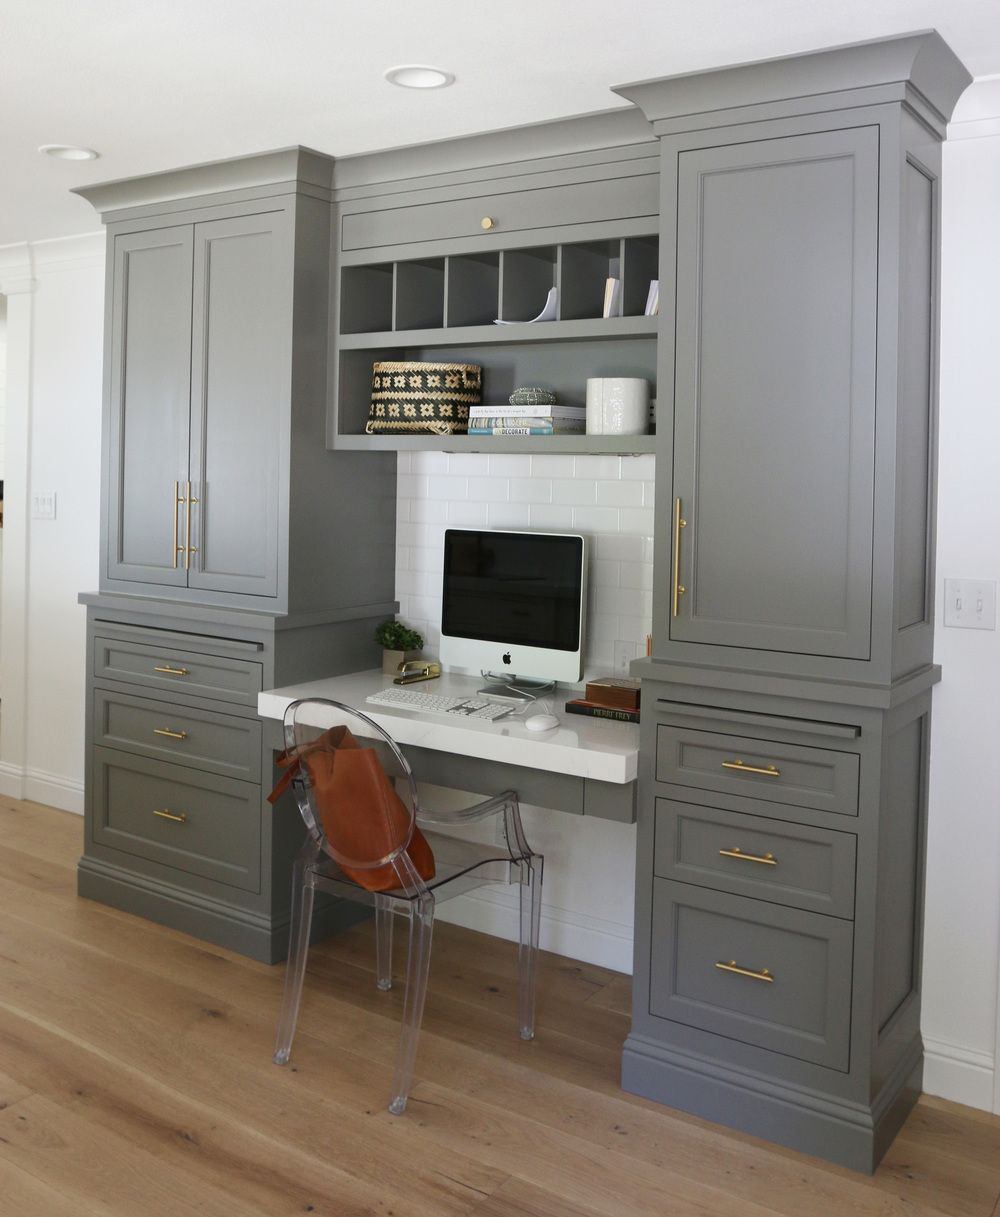 Built In Office Desk And Cabinets Before And After Robin Road Kitchen Remodel Gray Desk Gray